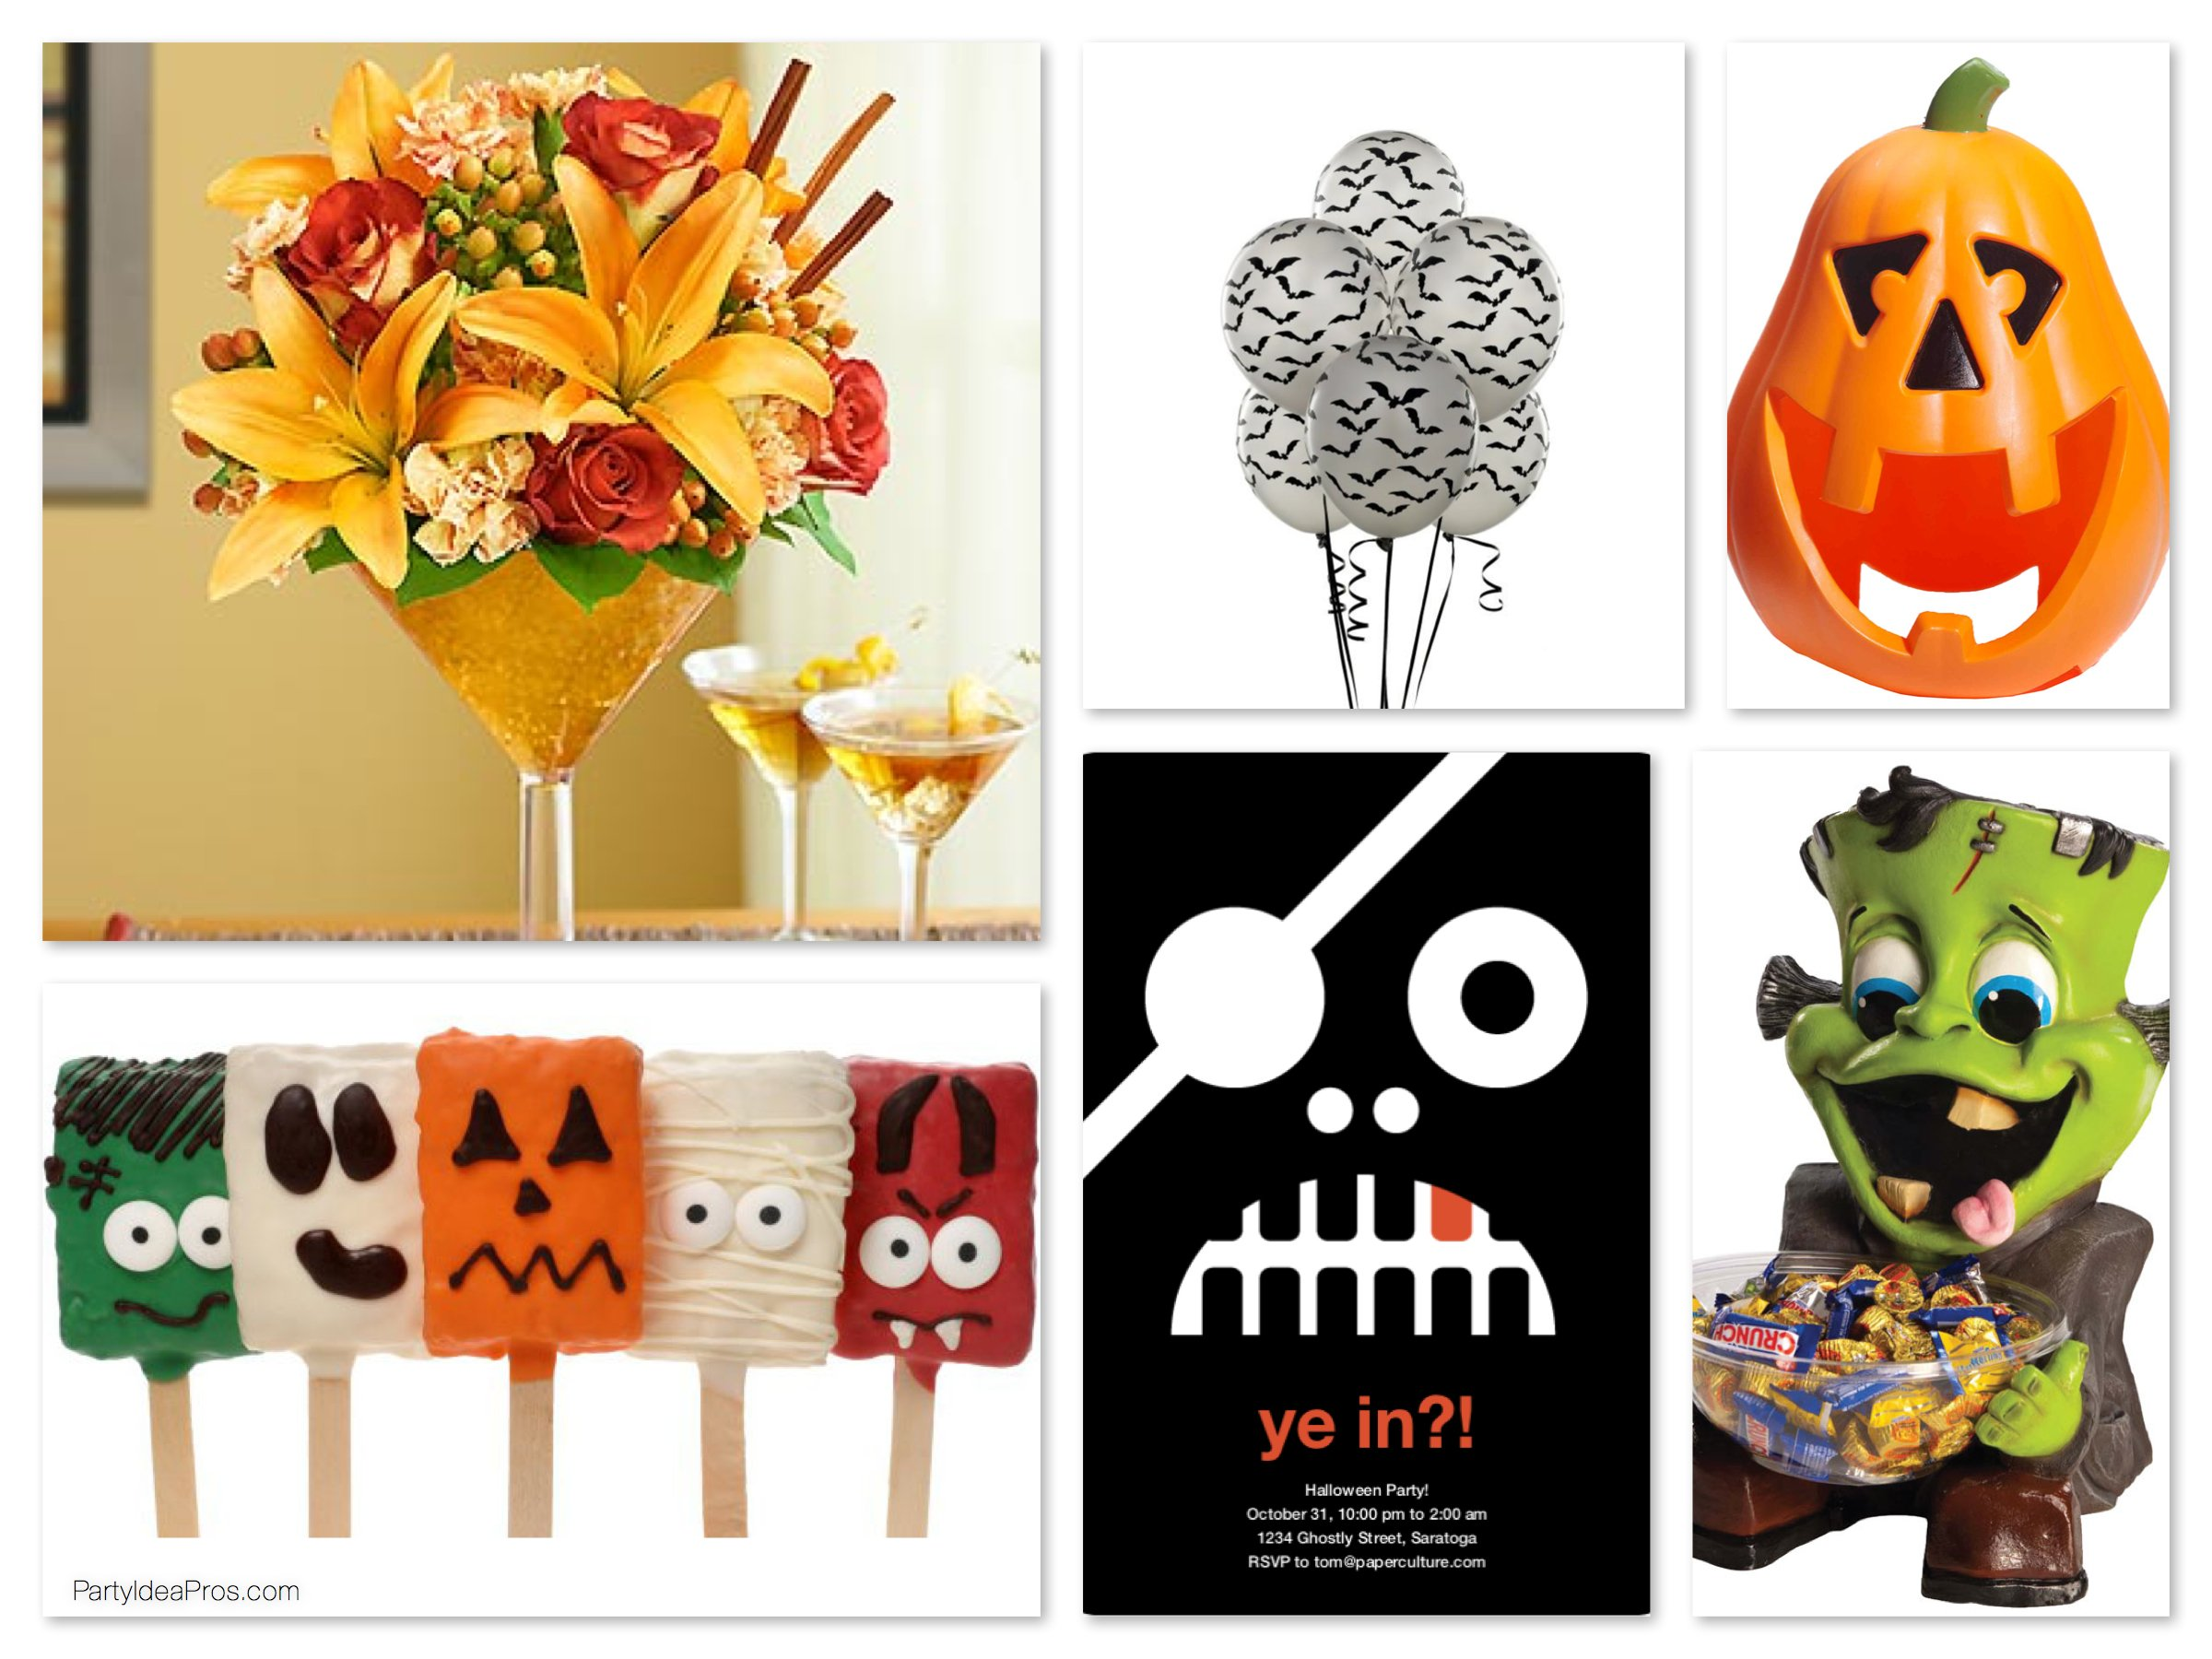 Halloween Decor Gifts Supplies & Games, Halloween Party Supplies